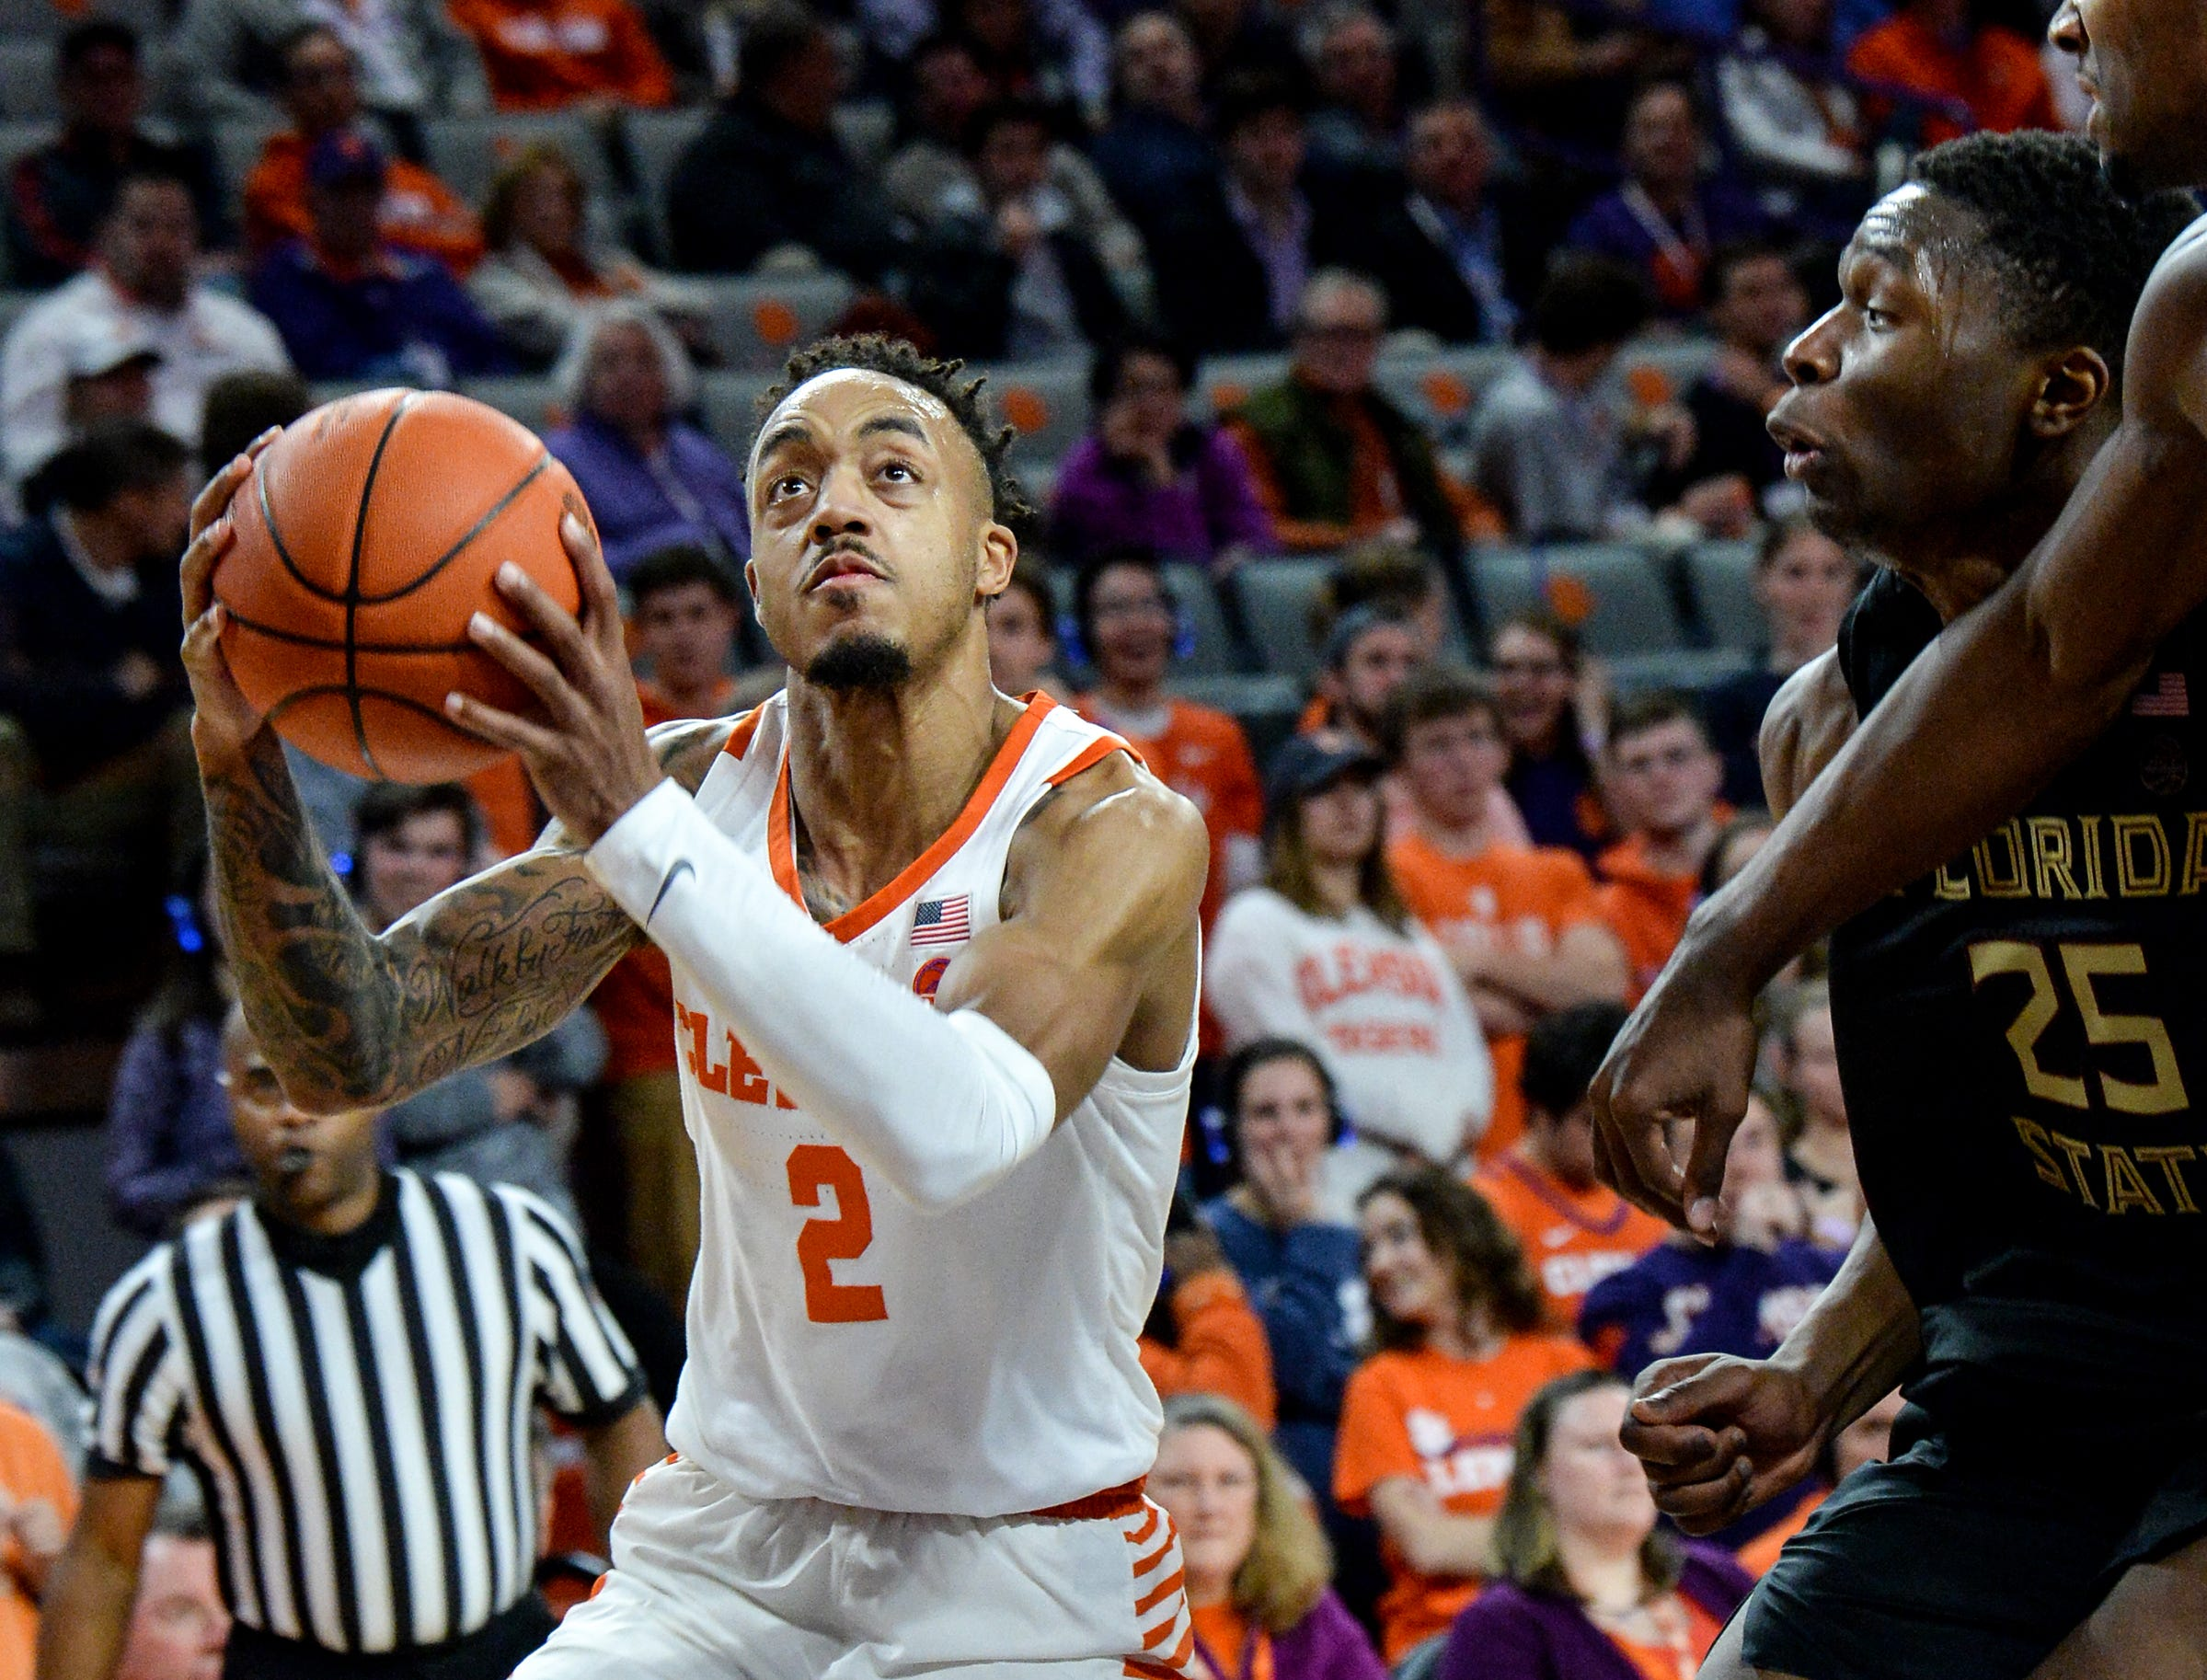 Clemson guard Marcquise Reed (2) scores near Florida State forward Mfiondu Kabengele(25) during the second half at Littlejohn Coliseum in Clemson Tuesday, February 19, 2019.